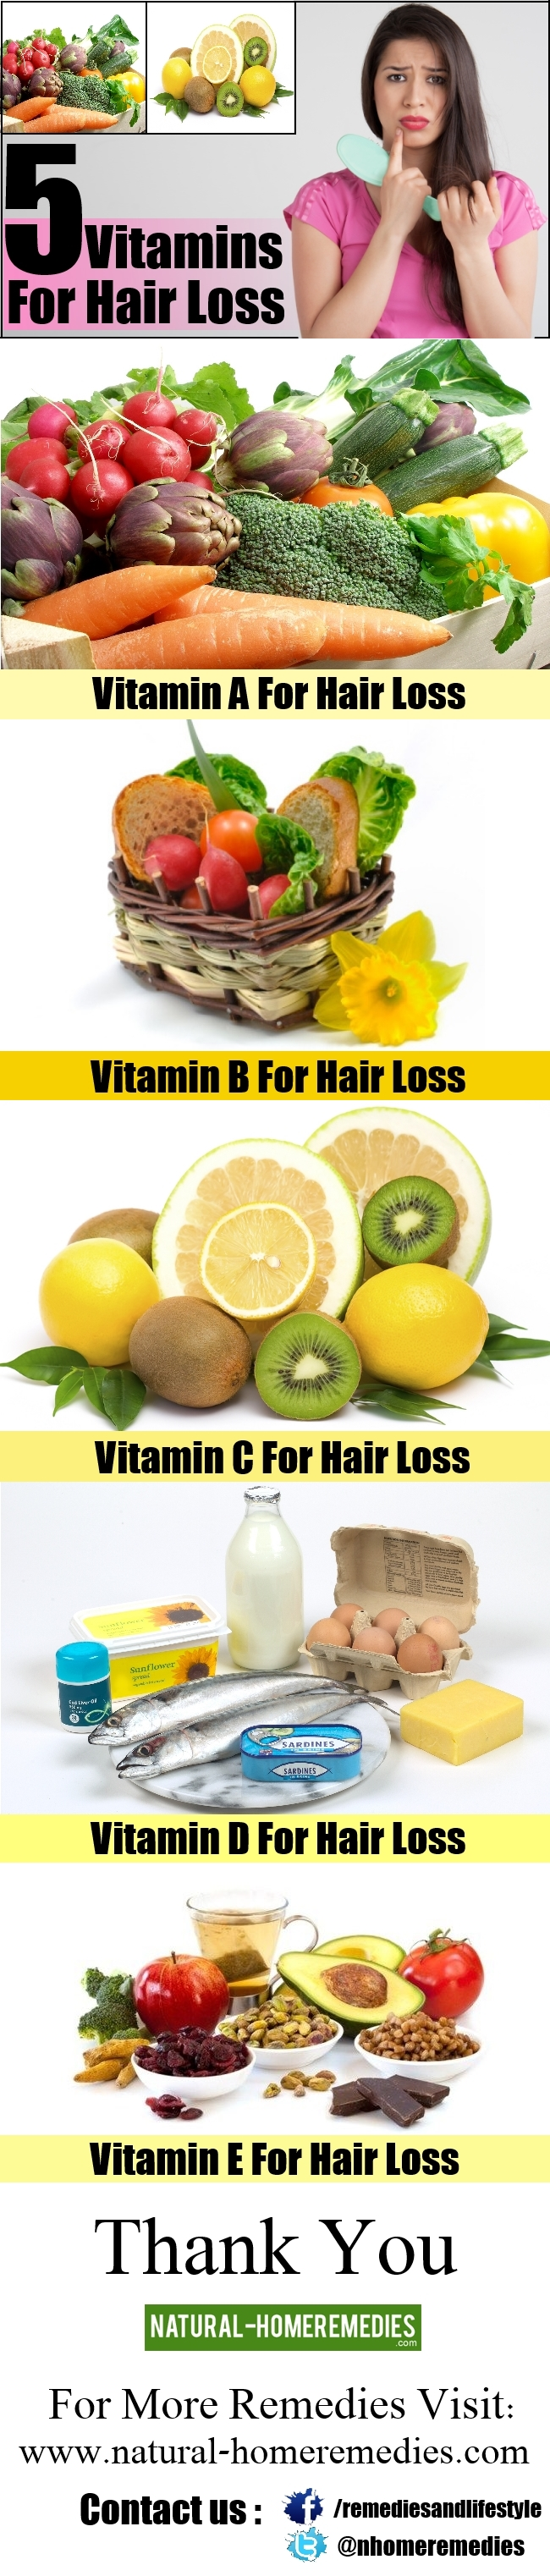 5 Vitamins For Hair Loss